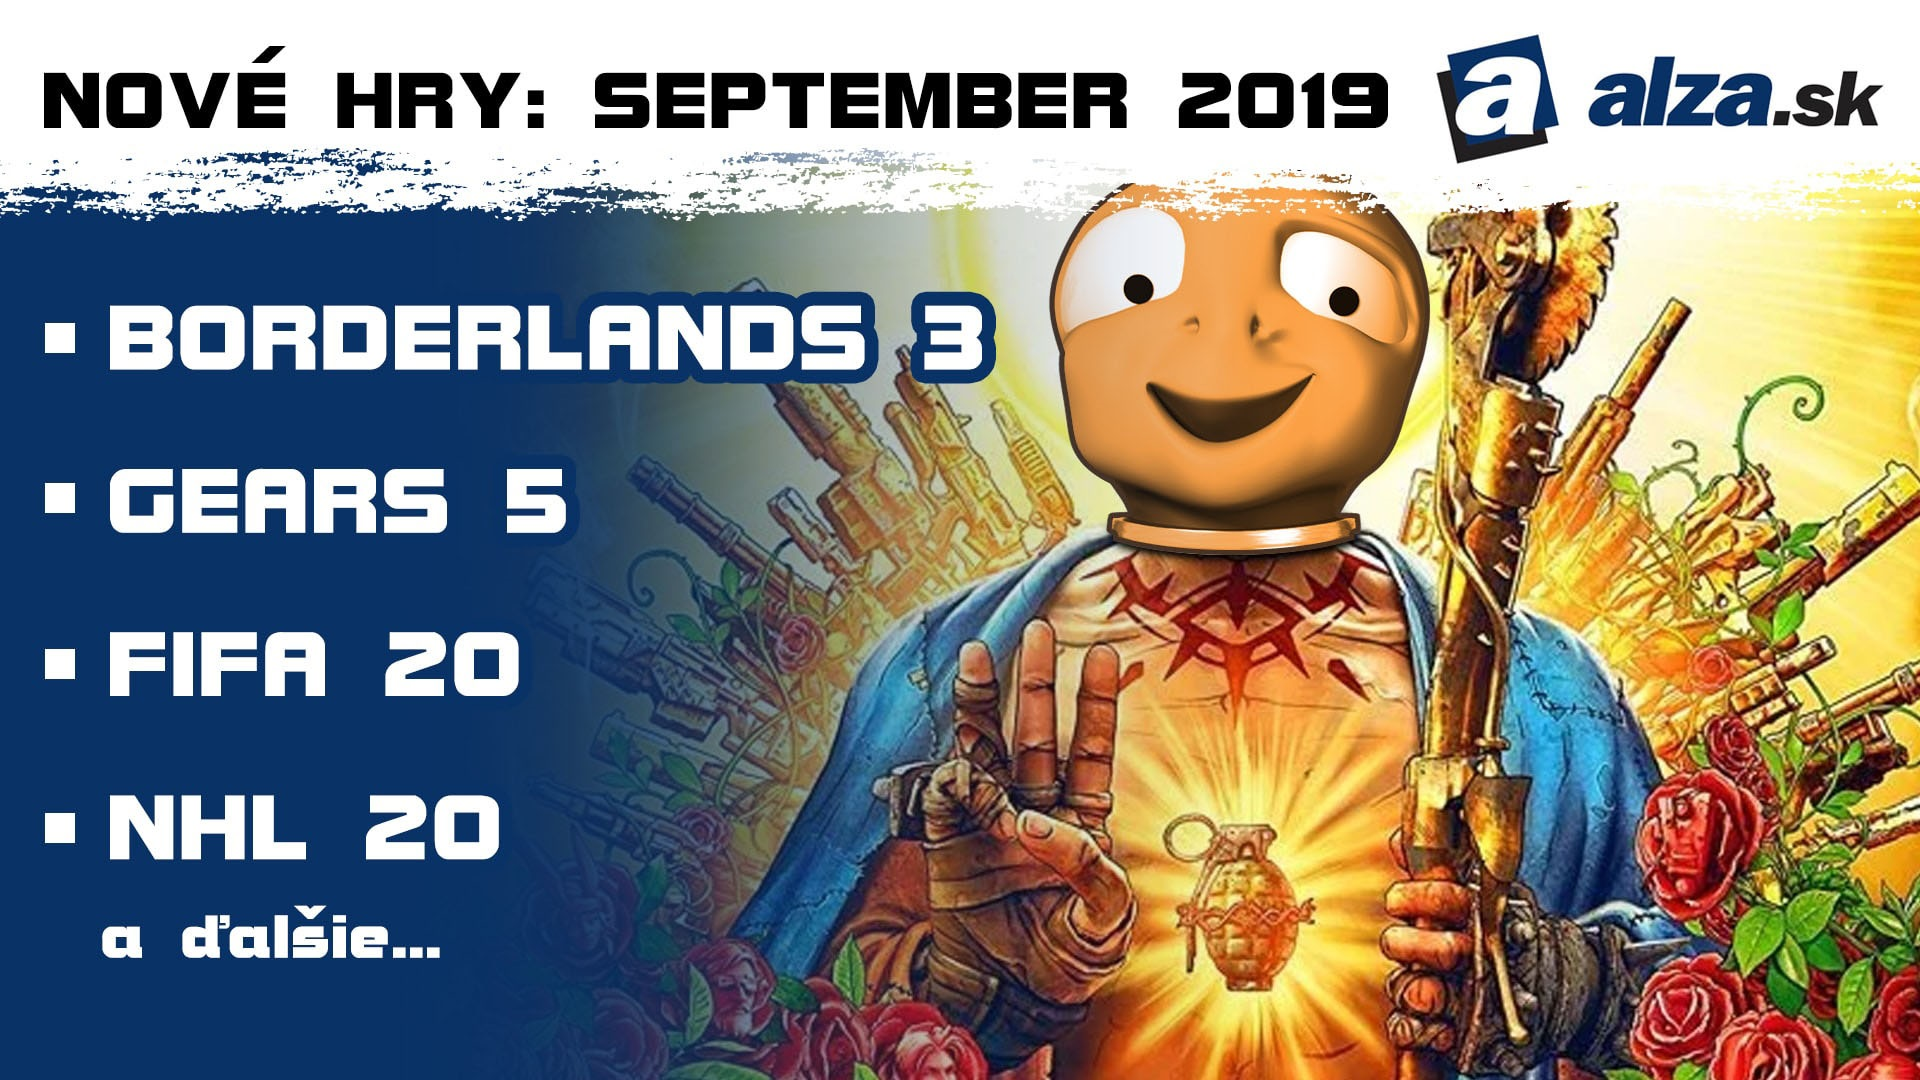 Nové hry: september 2019 – Borderlands 3